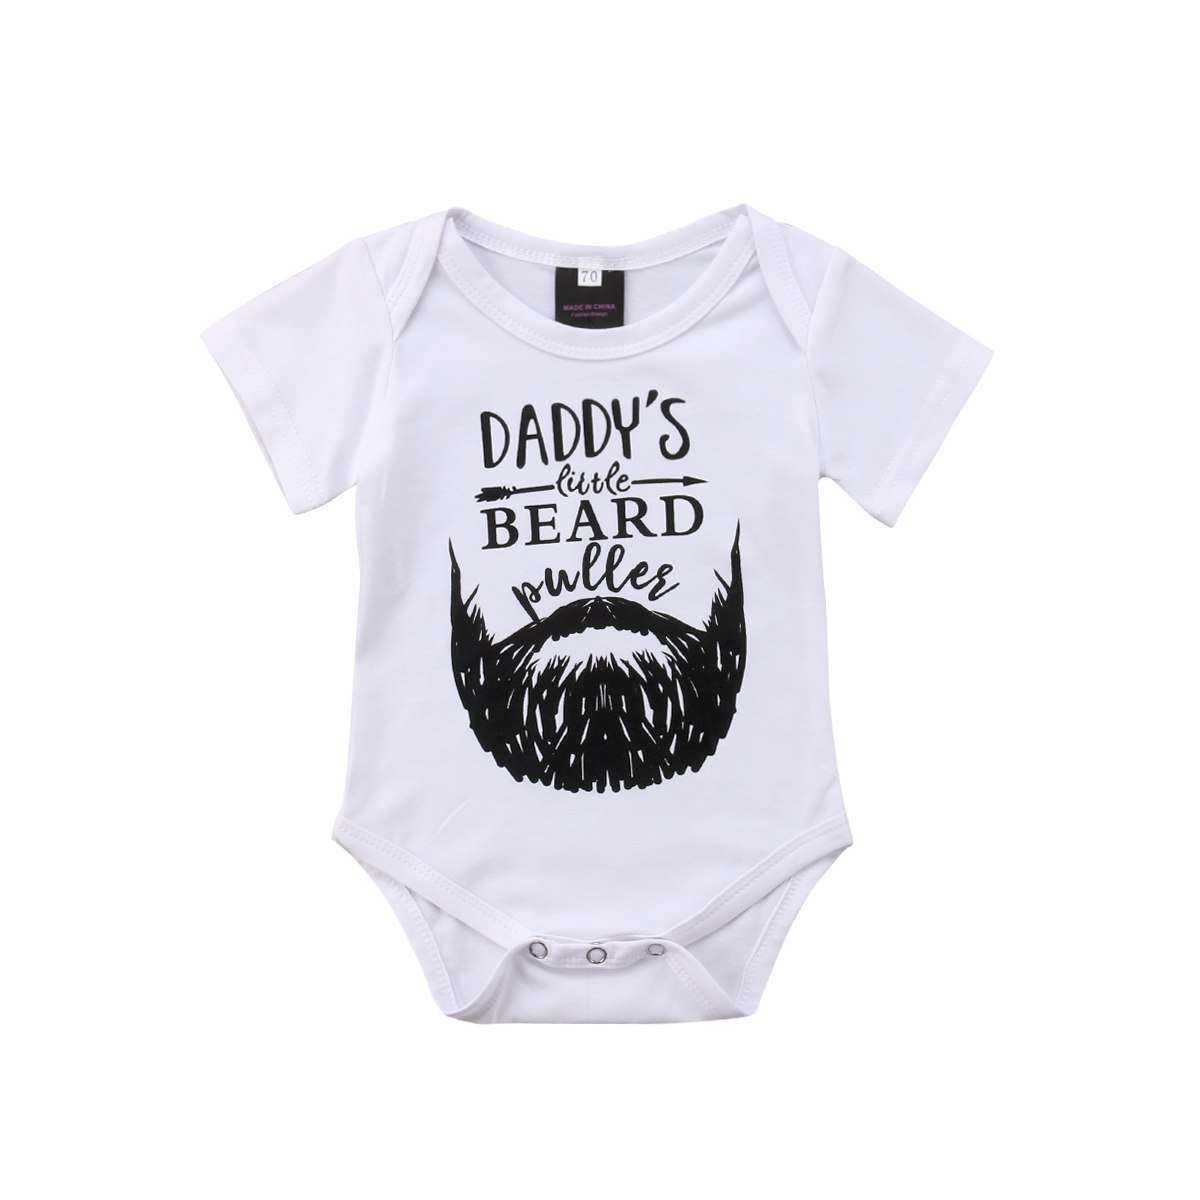 Emmababy 2019 Beard Newborn Toddler Baby Boy Girl Short Sleeve   Romper   Babygrows Outfits